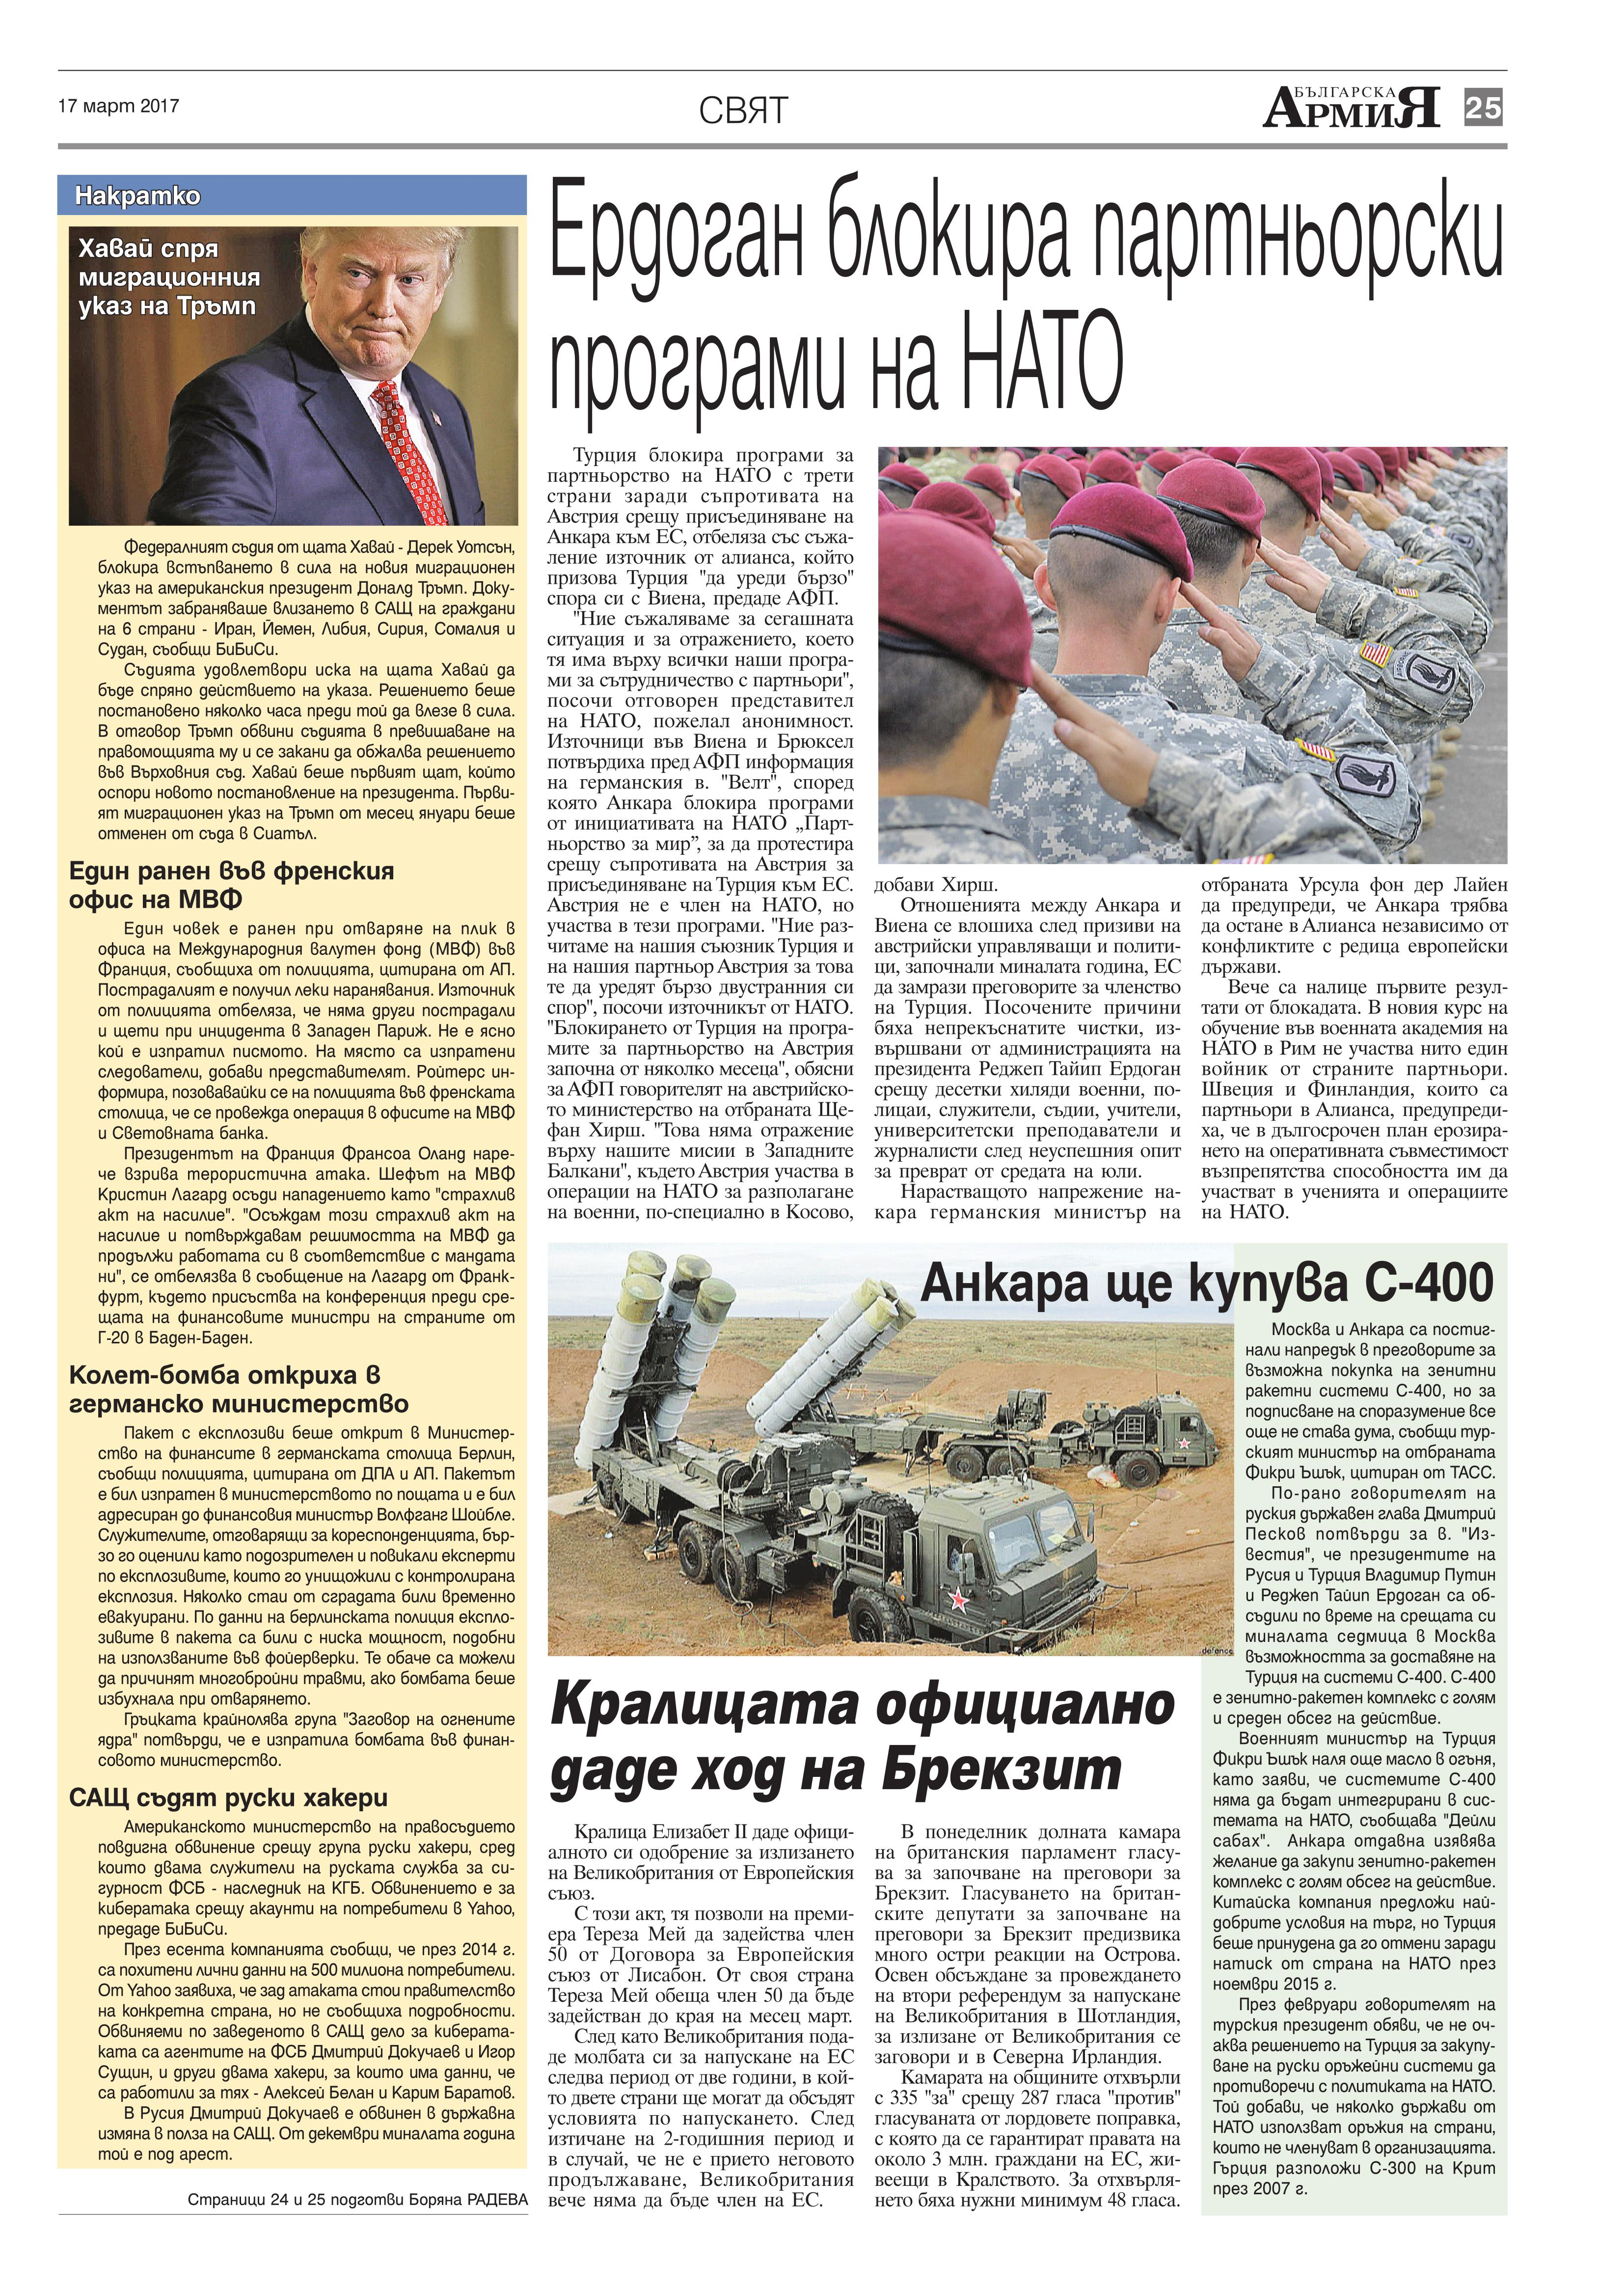 https://www.armymedia.bg/wp-content/uploads/2015/06/25.page1_-15.jpg